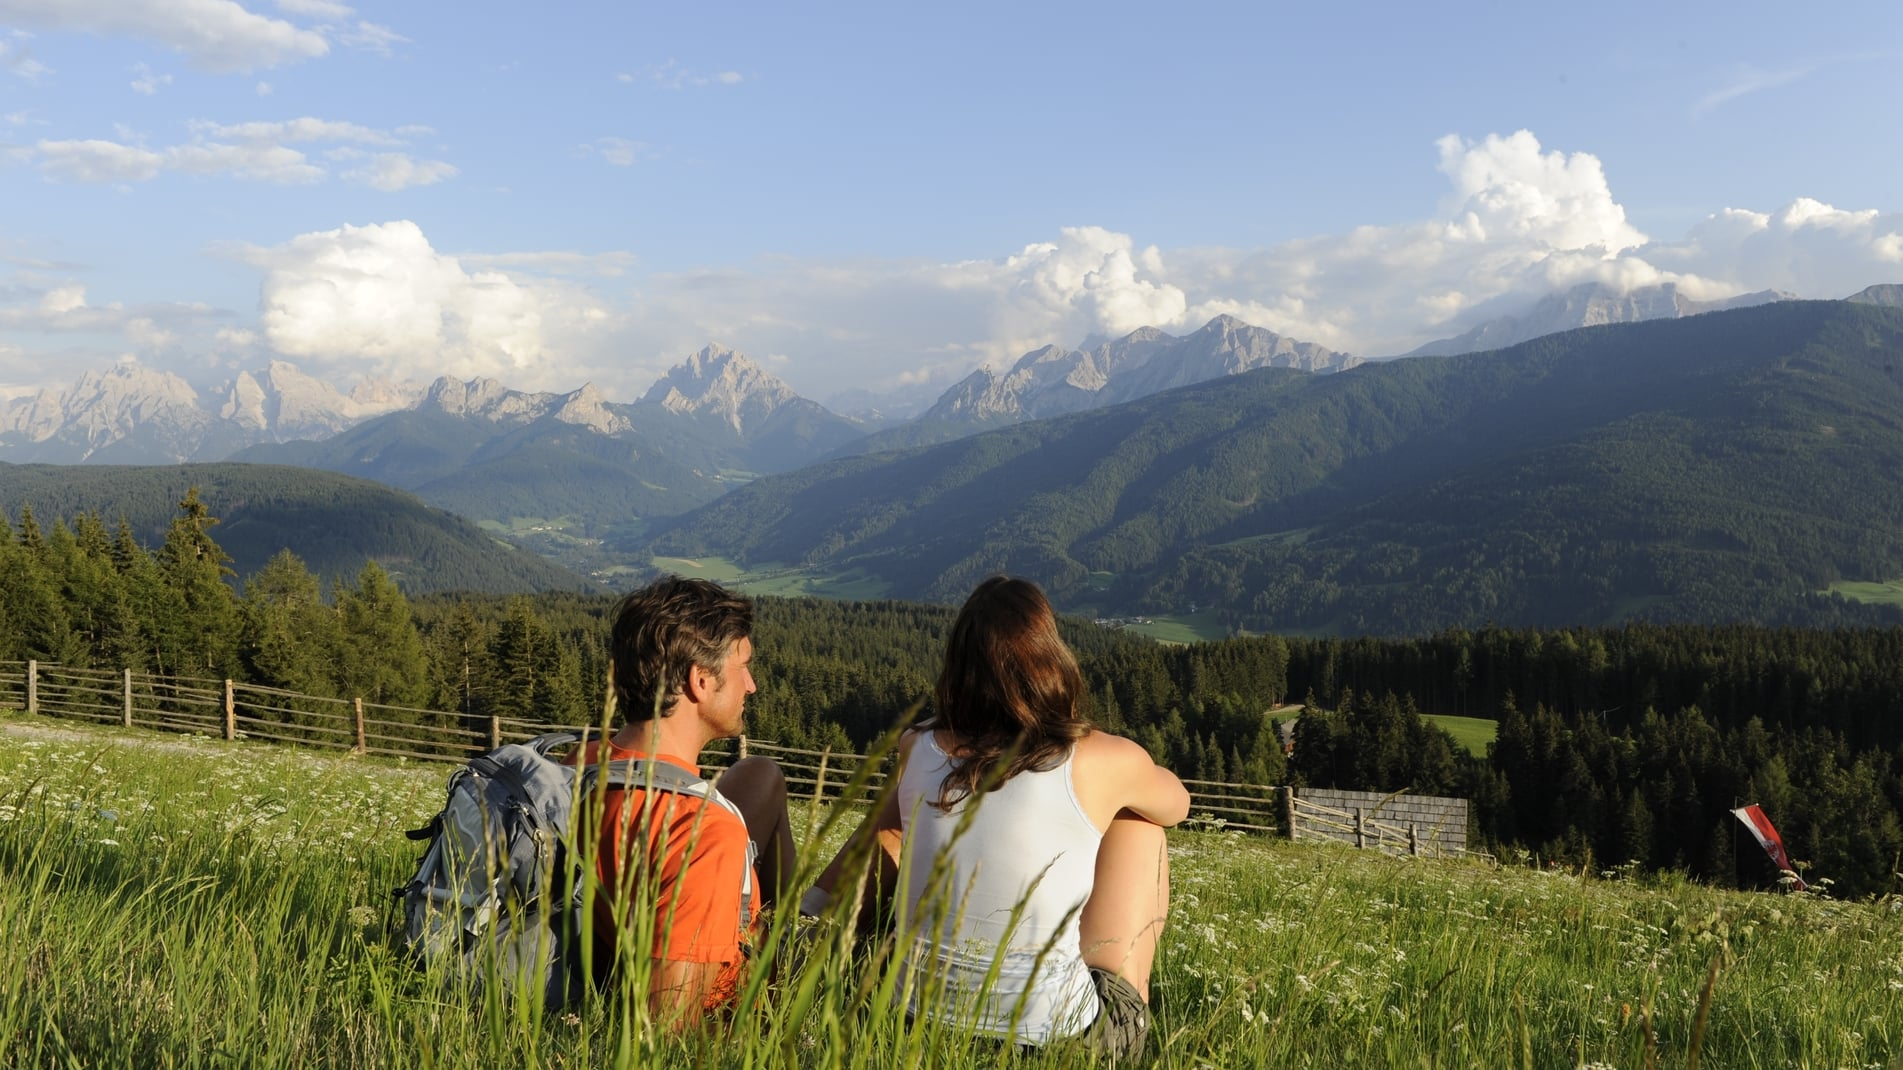 Summer in the Kronplatz Ski Area